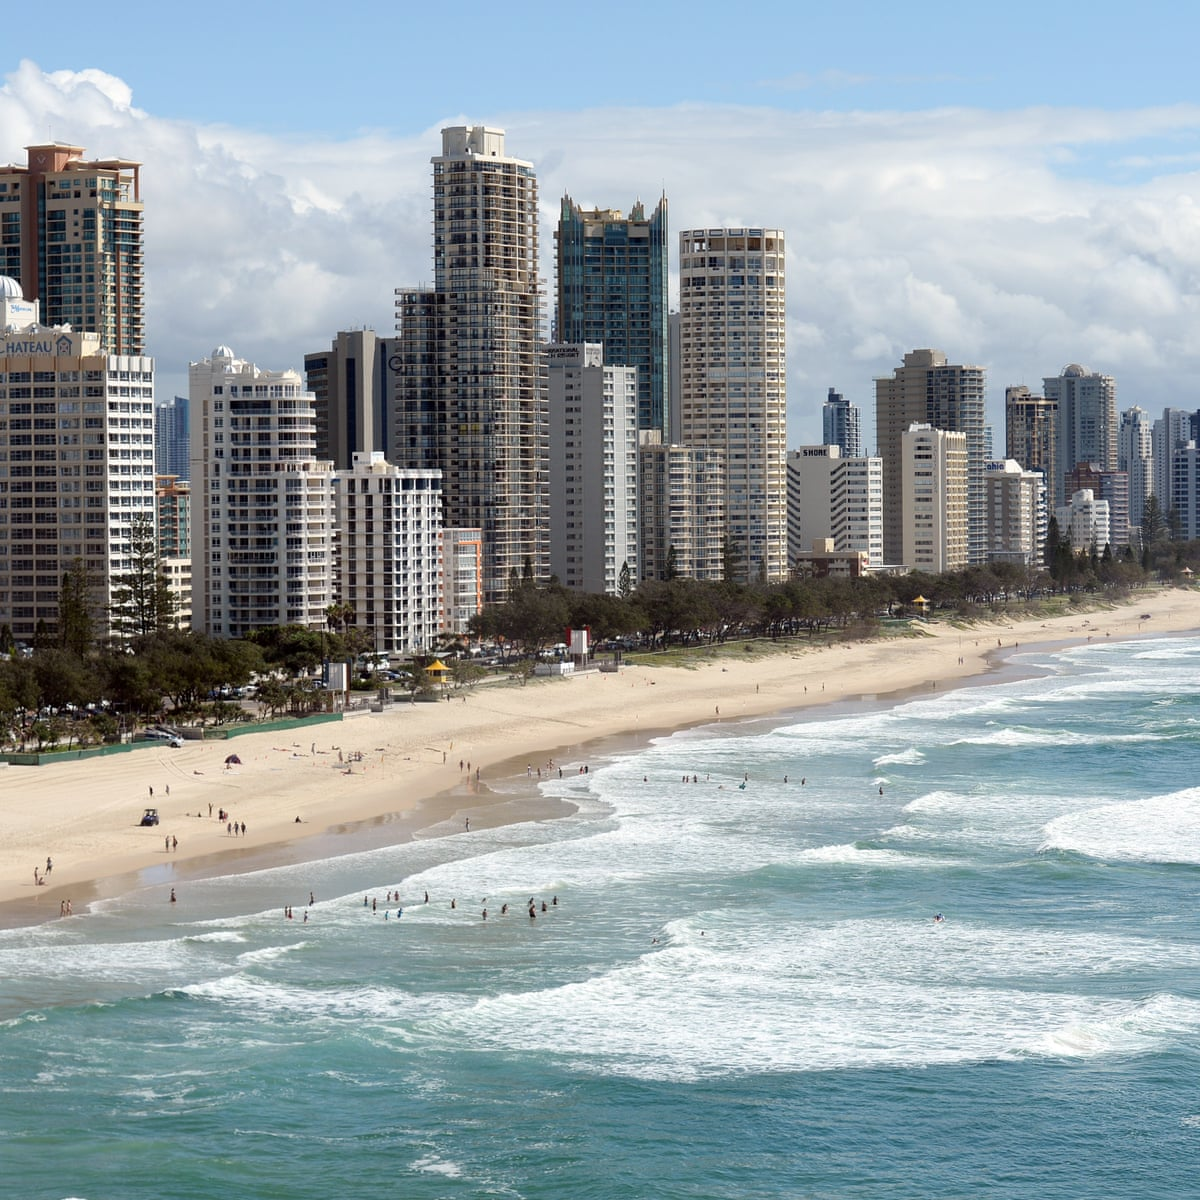 Man Denied Bail Over Alleged Surfers Paradise Sexual Assault Rampage Crime Australia The Guardian